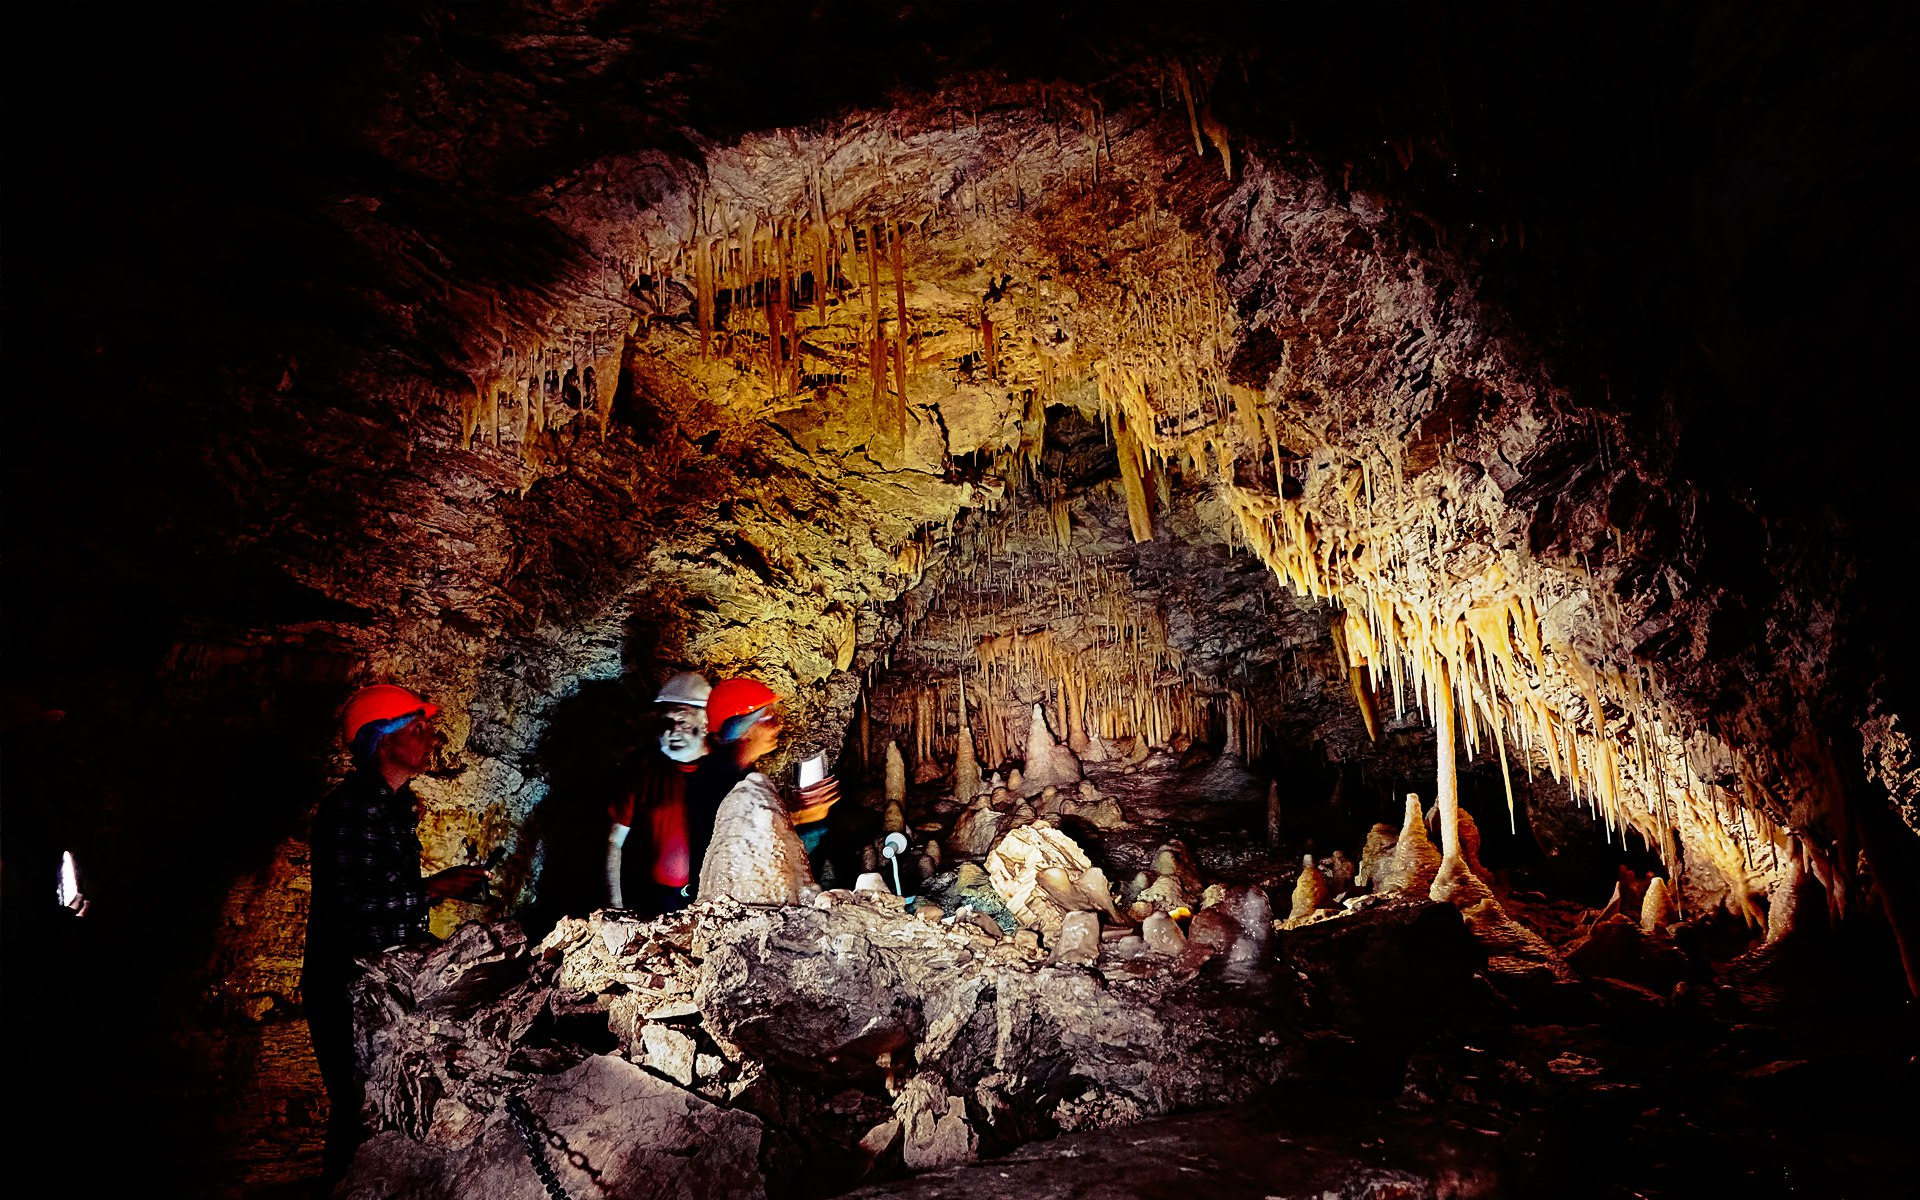 caves-kaikoura-cave-tour-03